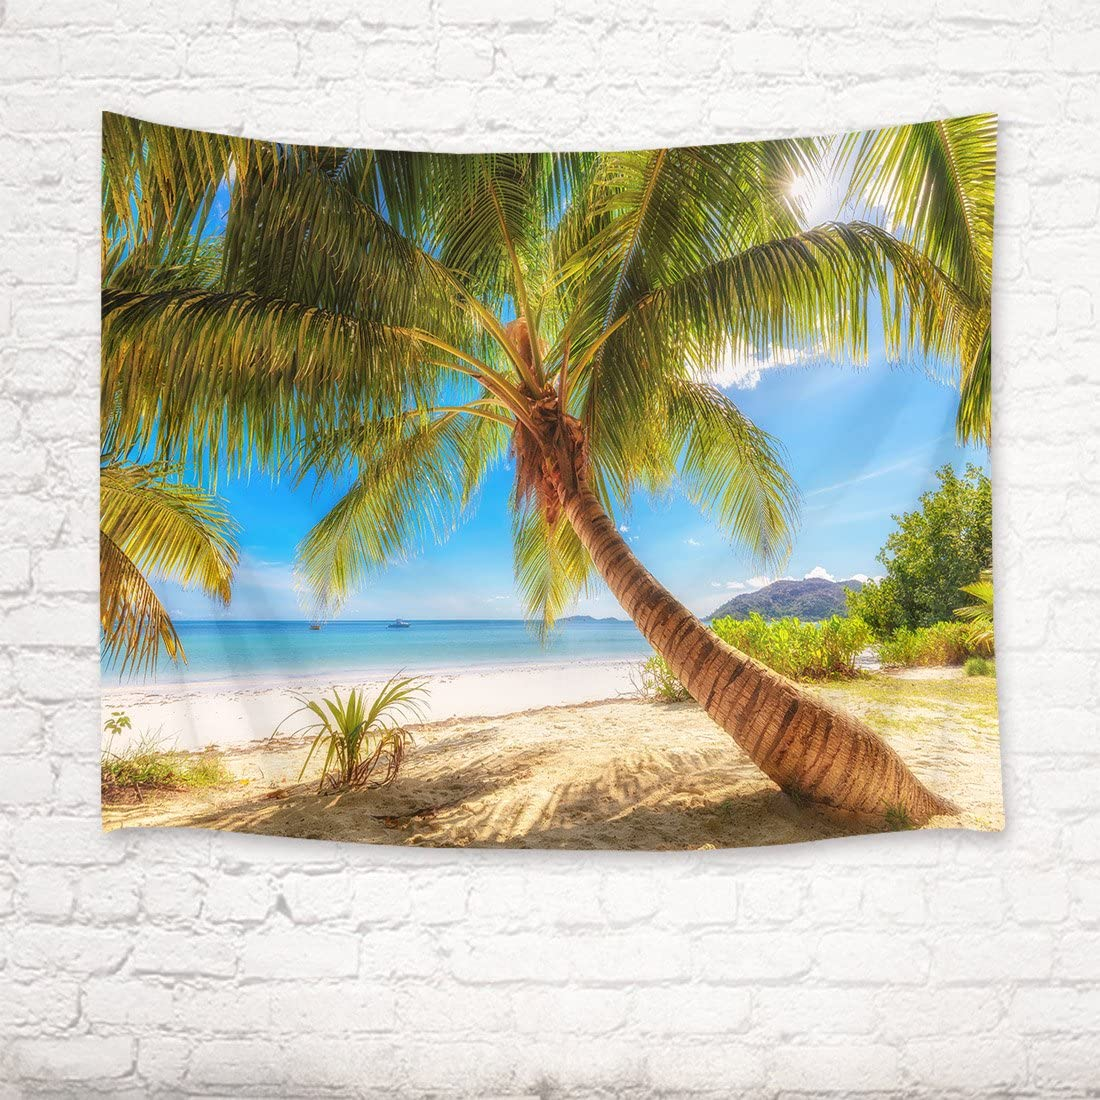 HVEST Ocean Tapestry Green Palm Trees on Tropical Beach Wall Hanging Summer Vacation Tapestries for Bedroom Living Room Dorm Party Decor,92.5Wx70.9H inches